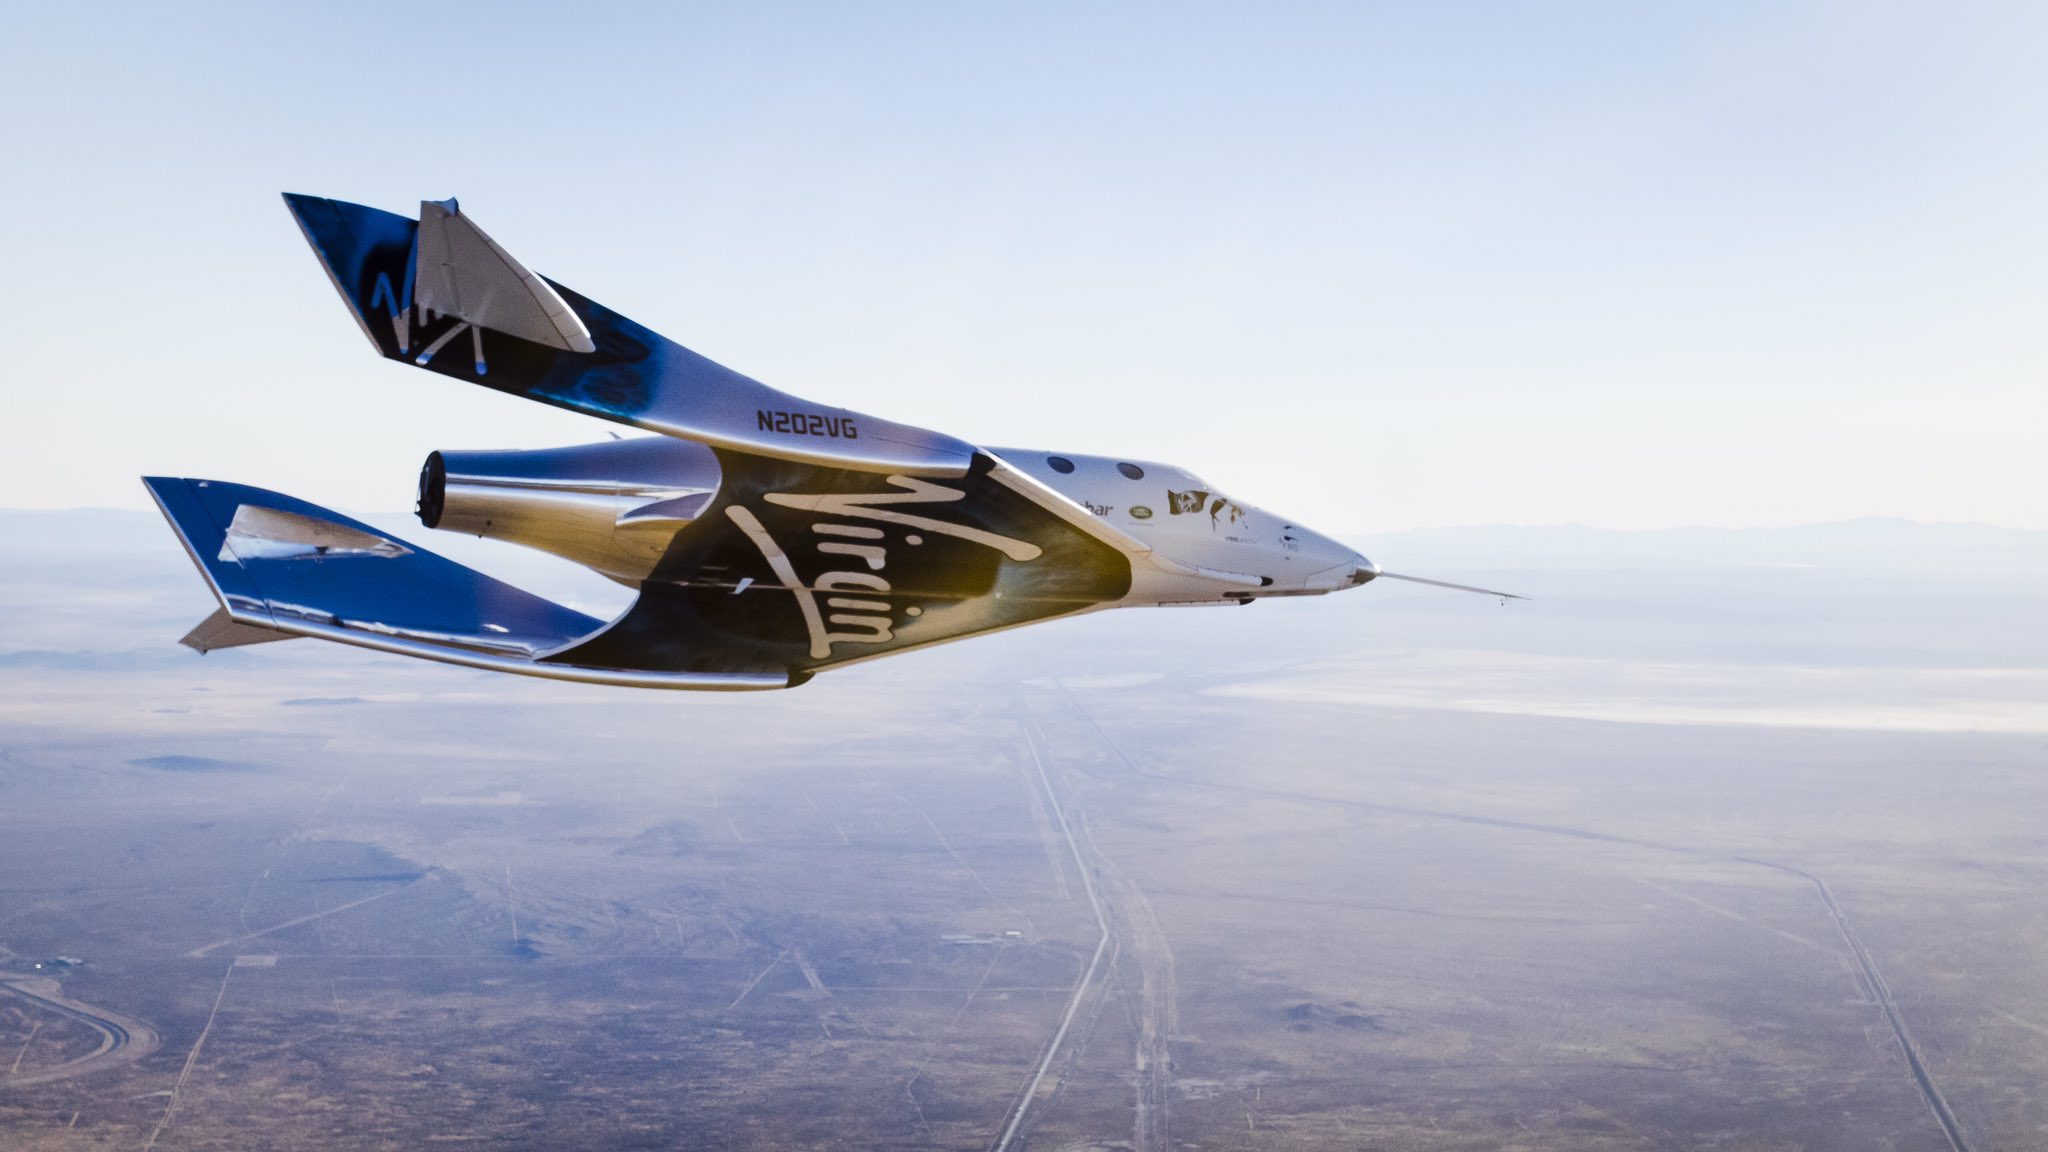 Virgin Galactic's VSS Unity Spaceship Makes 1st Solo Glide Flight